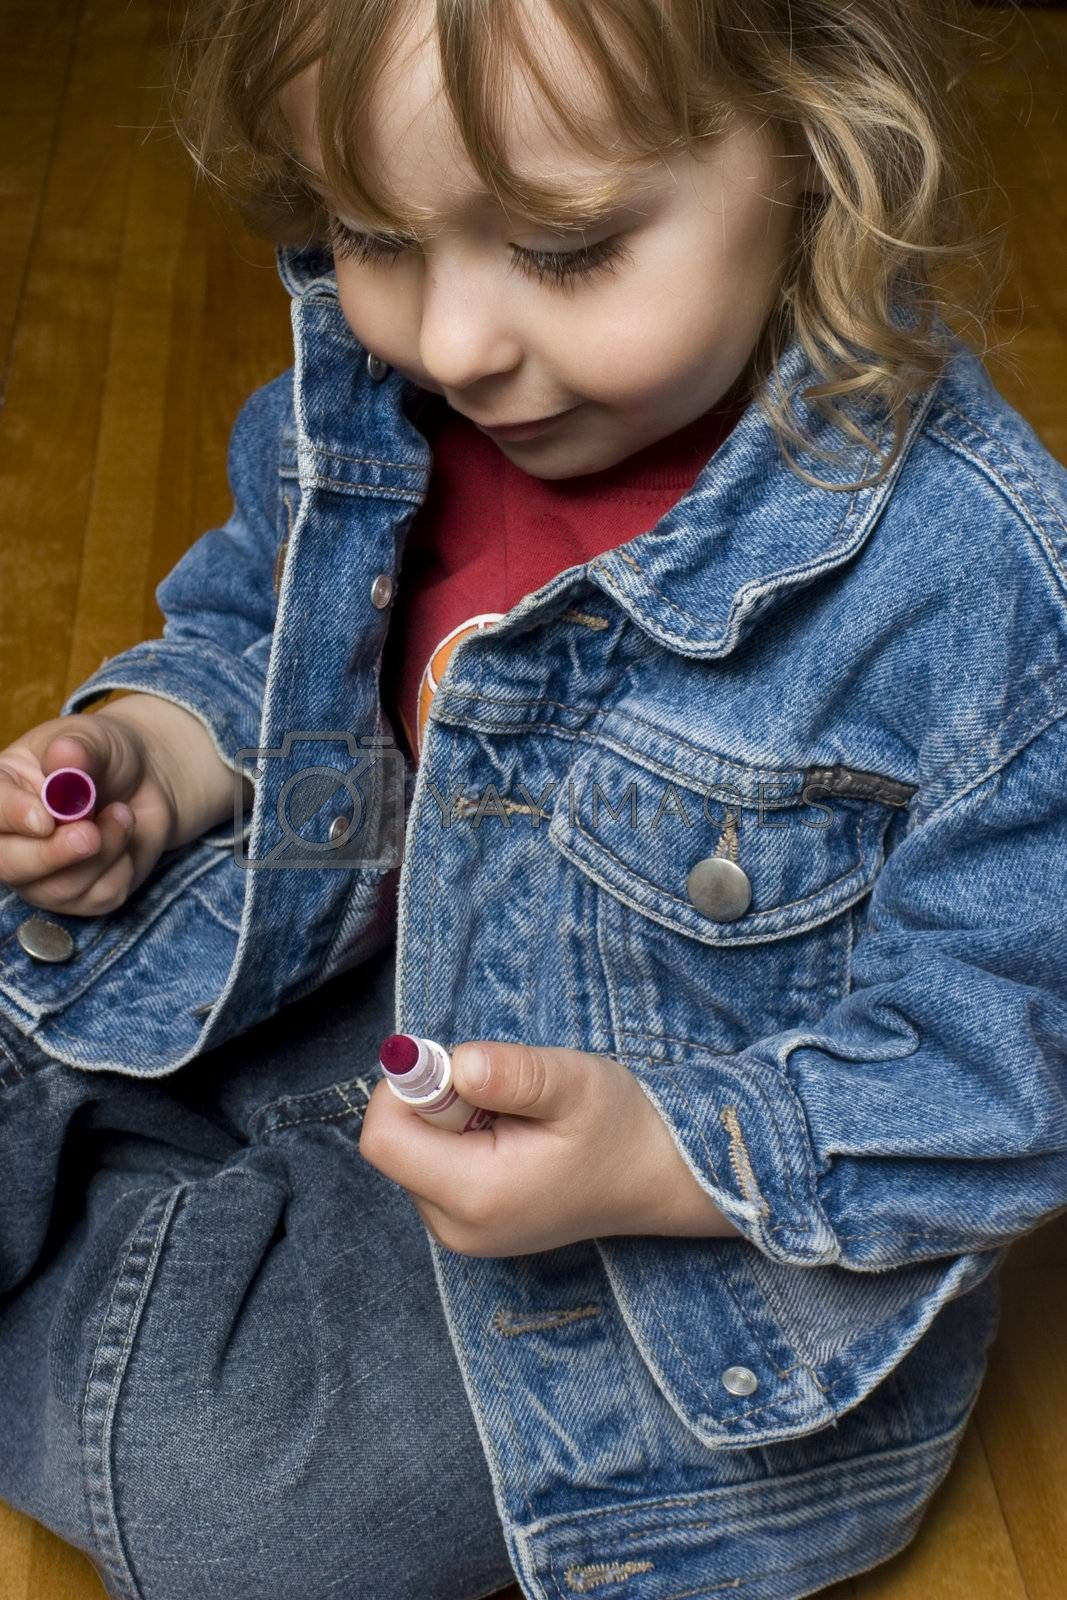 Portrait of a two year old boy wearing a jean jacket with great big smile playing with pink marker sitting on a wood floor